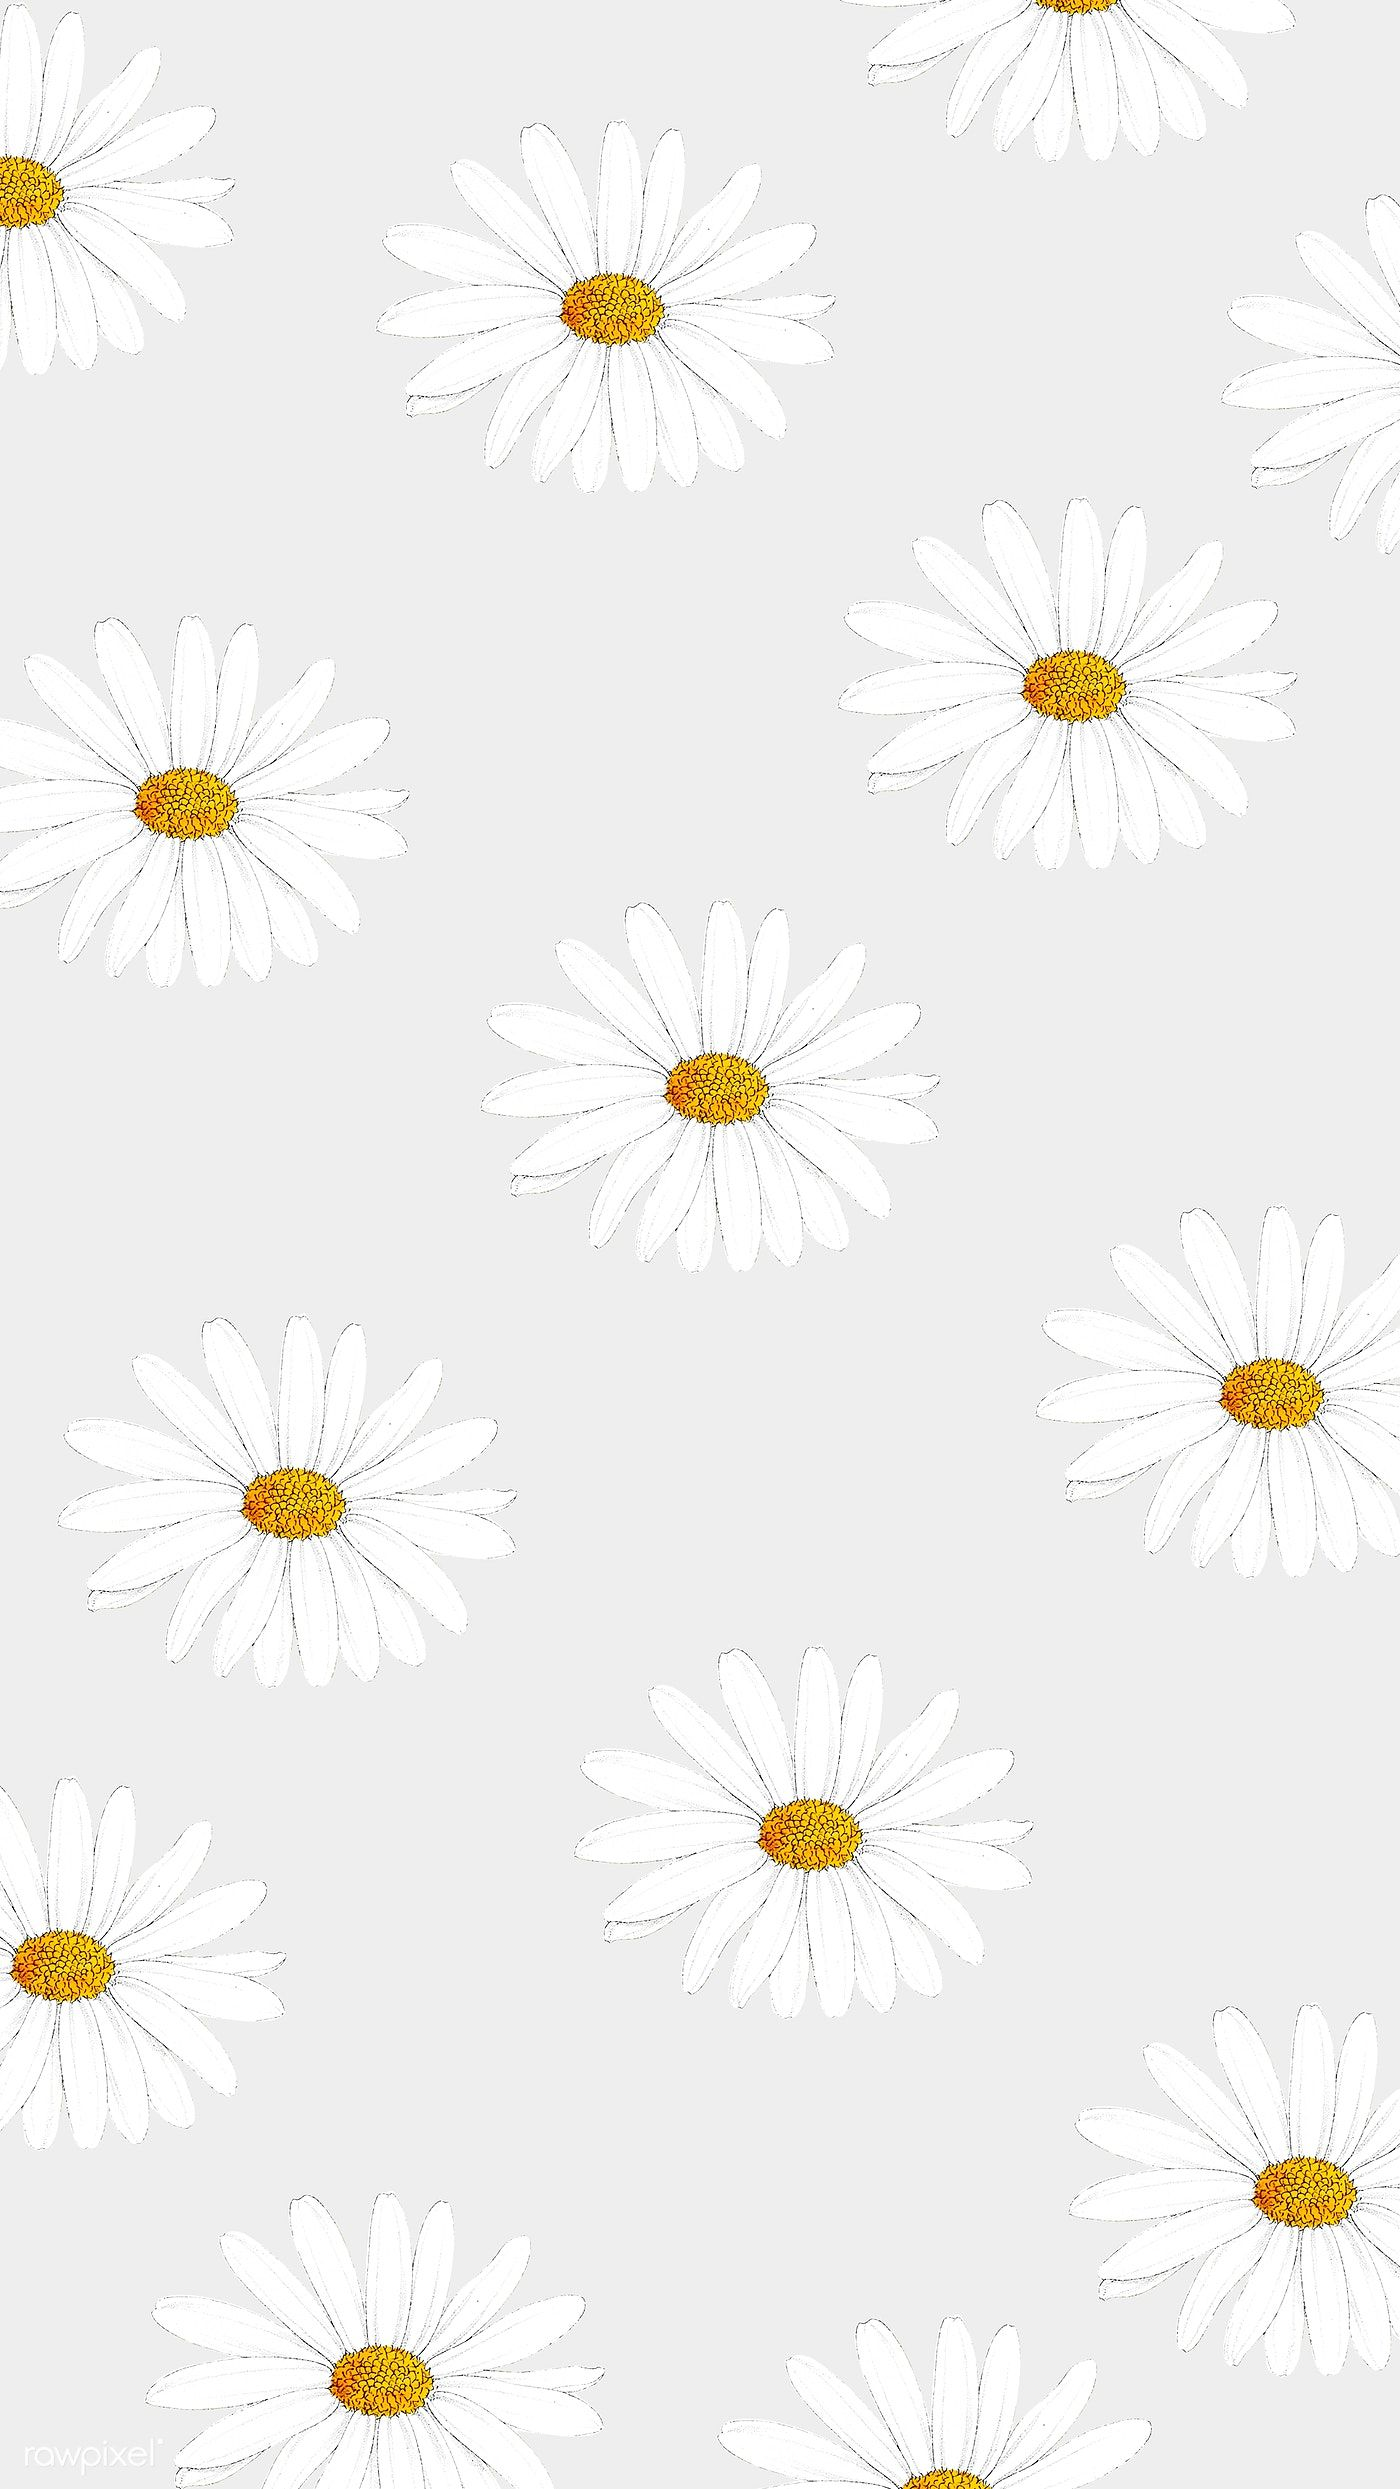 Download Premium Illustration Of White Daisy Patterned Mobile Wallpaper In 2020 Daisy Wallpaper New Flower Wallpaper Drawing Wallpaper